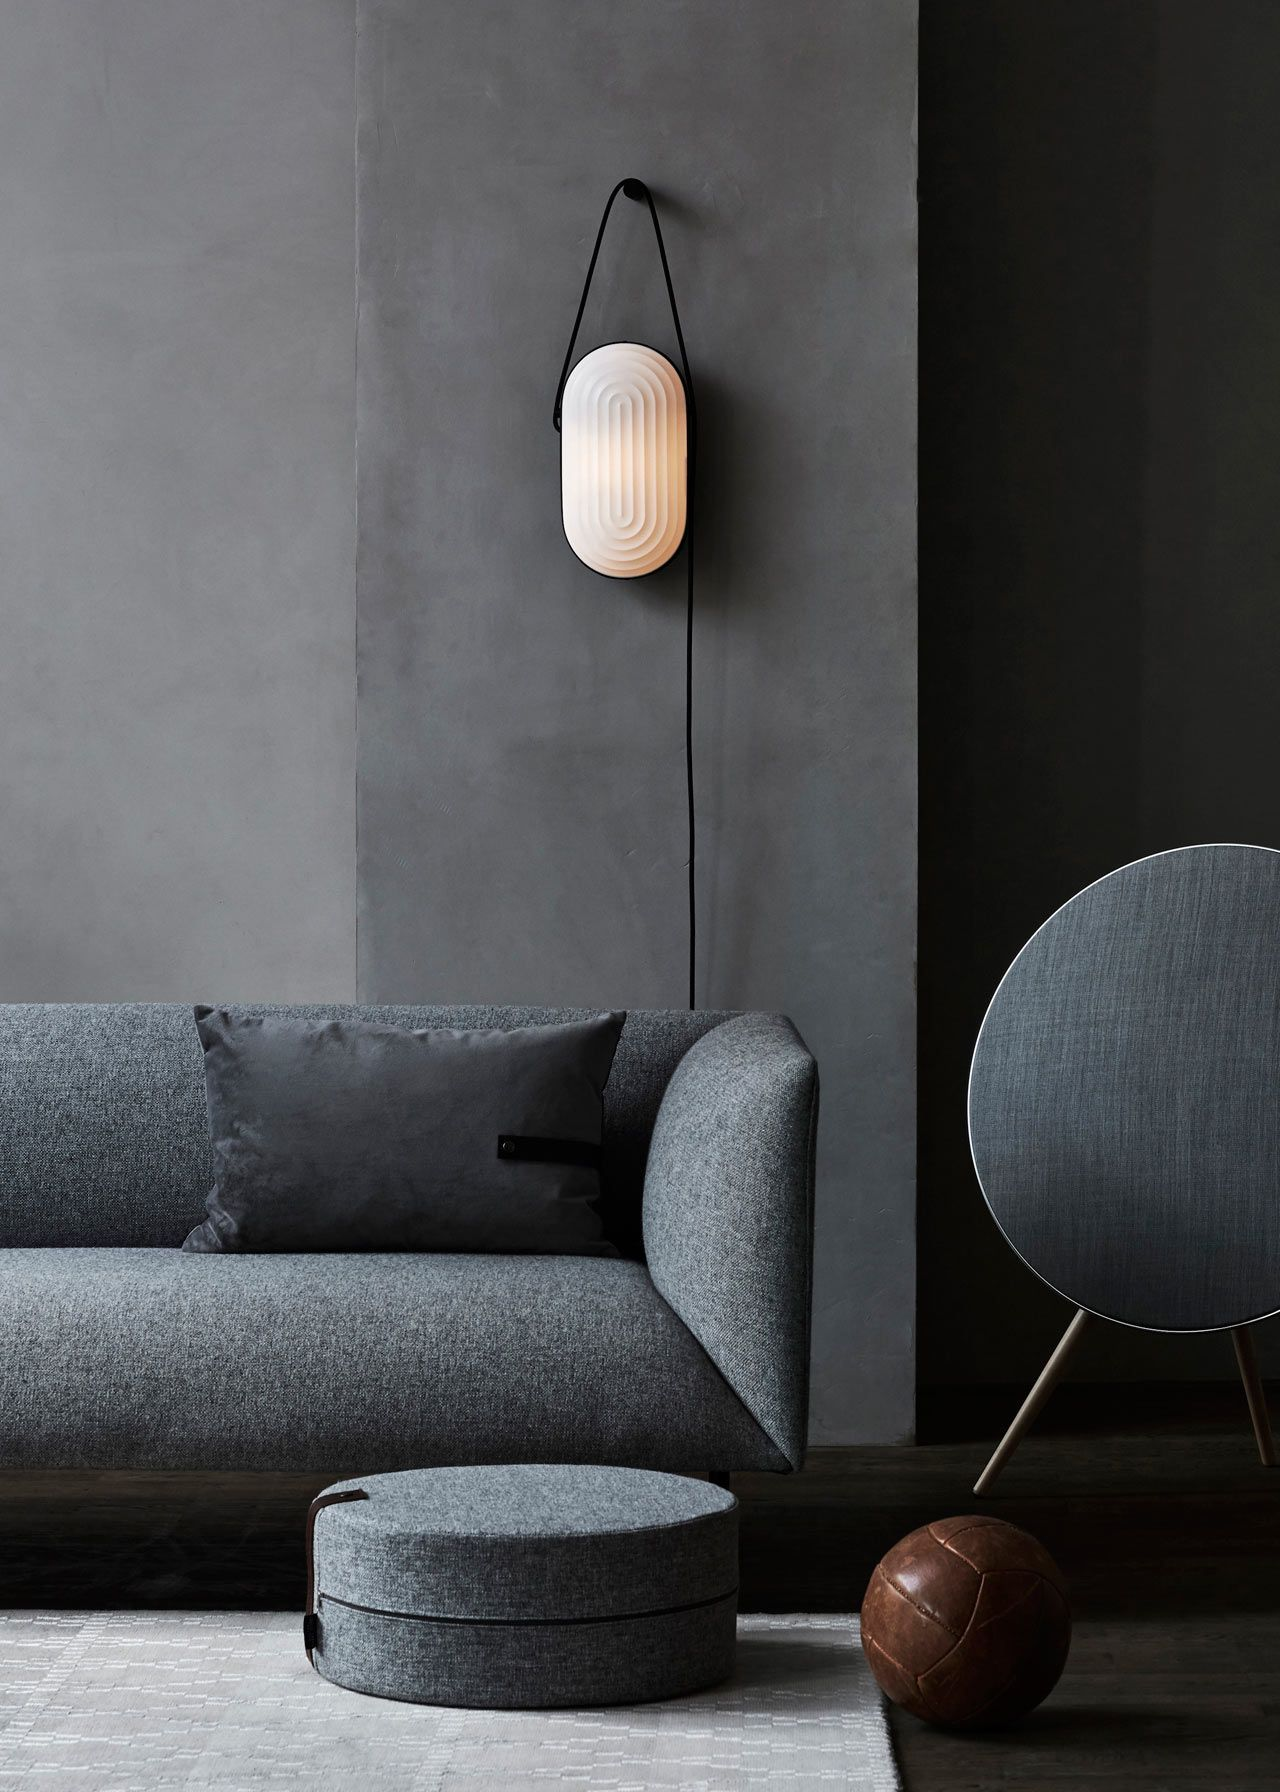 Proof that miles wall lamp is exactly what you are looking for